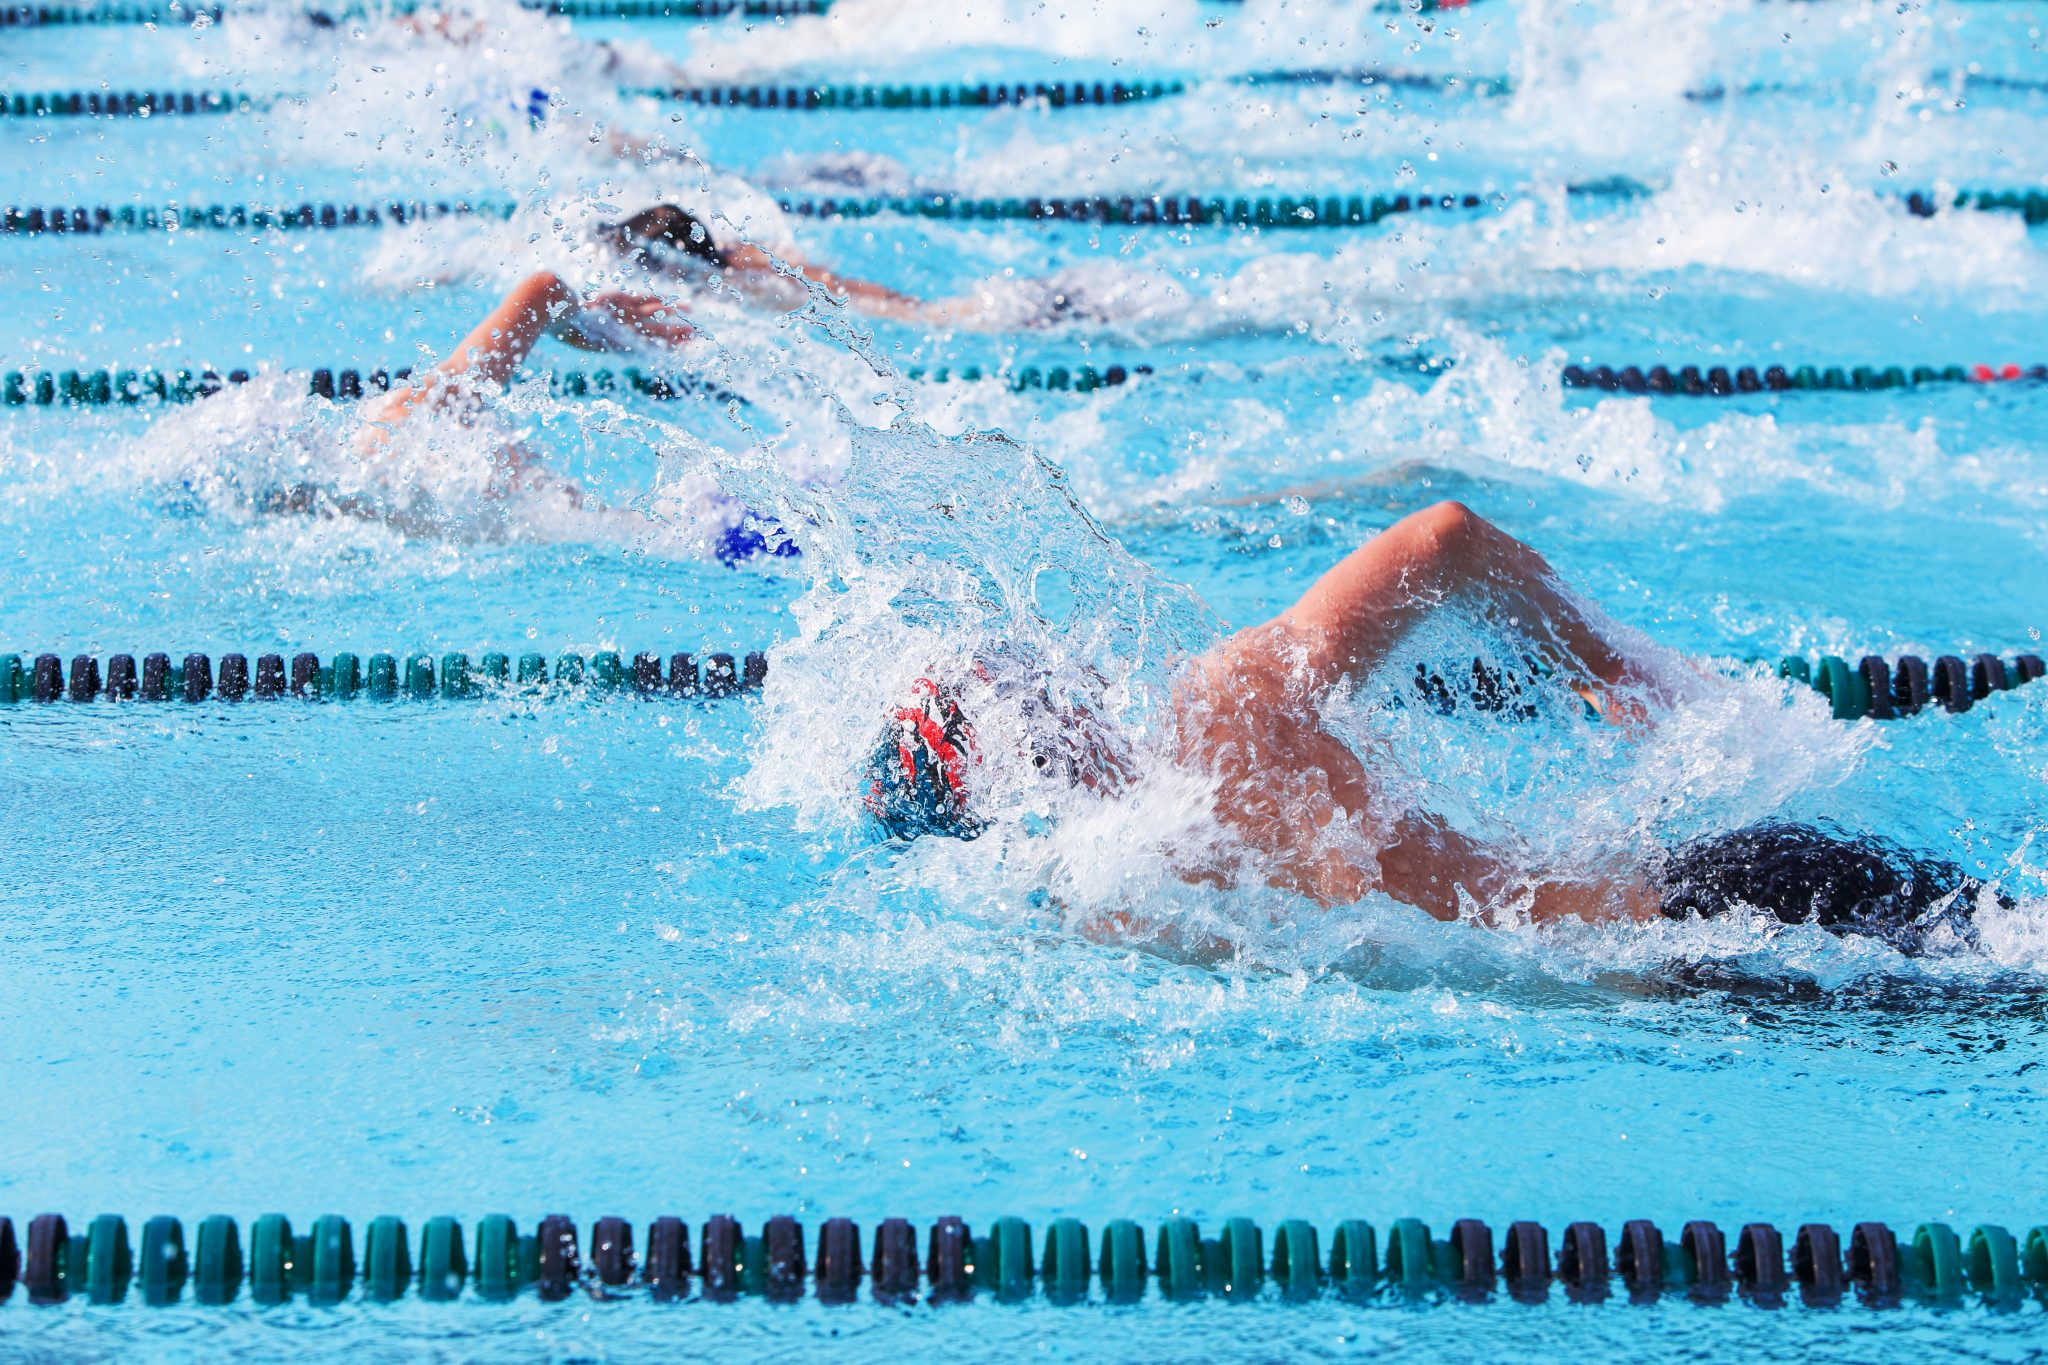 Freestyle swimmers racing